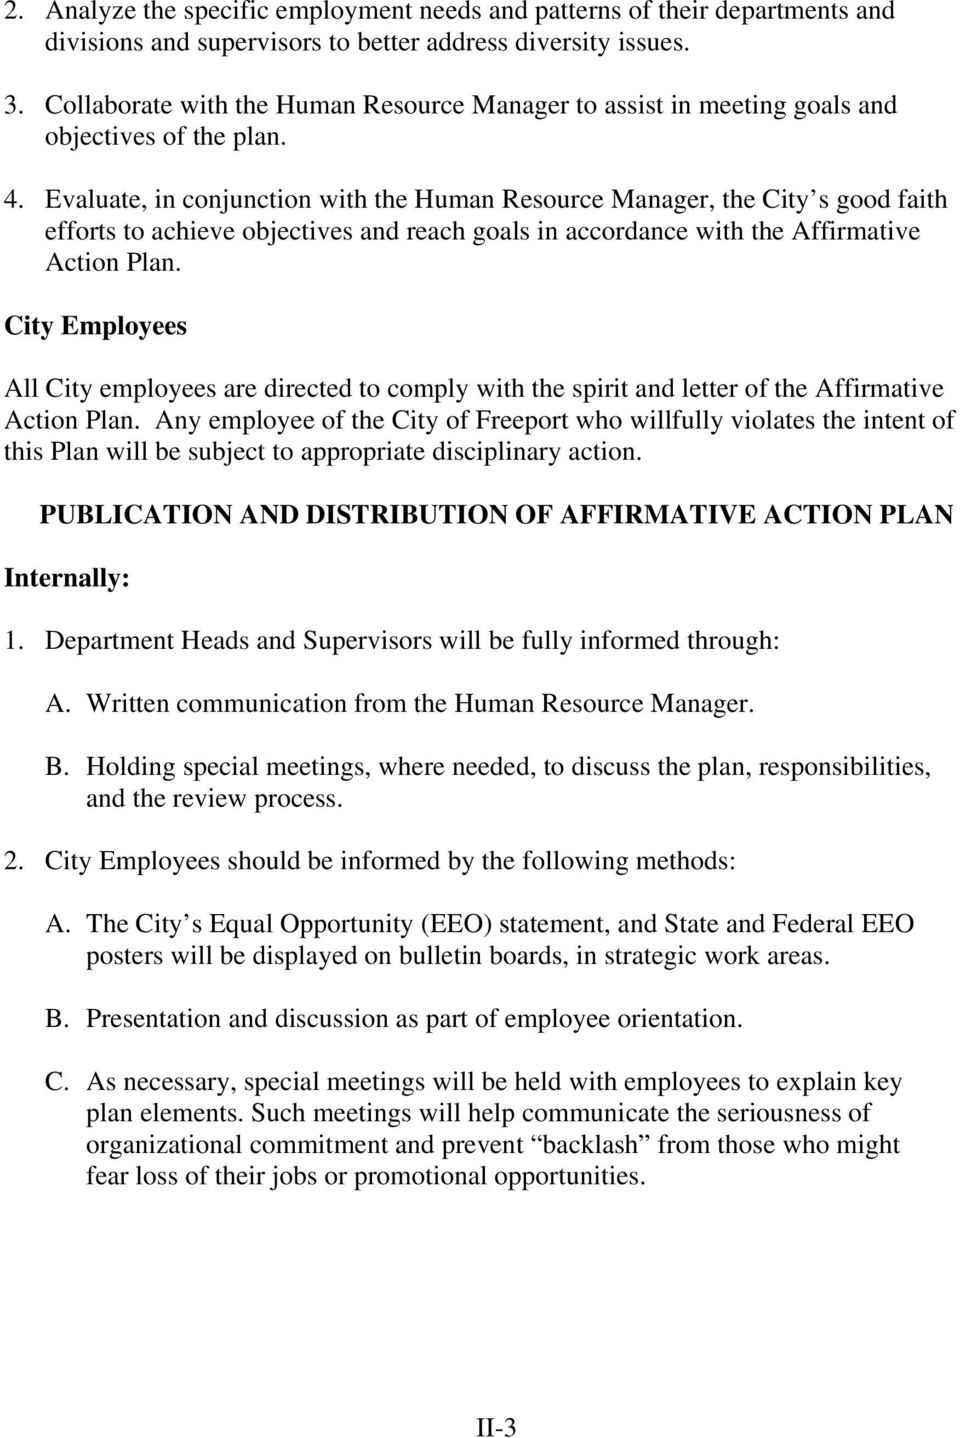 Evaluate, in conjunction with the Human Resource Manager, the City s good faith efforts to achieve objectives and reach goals in accordance with the Affirmative Action Plan.